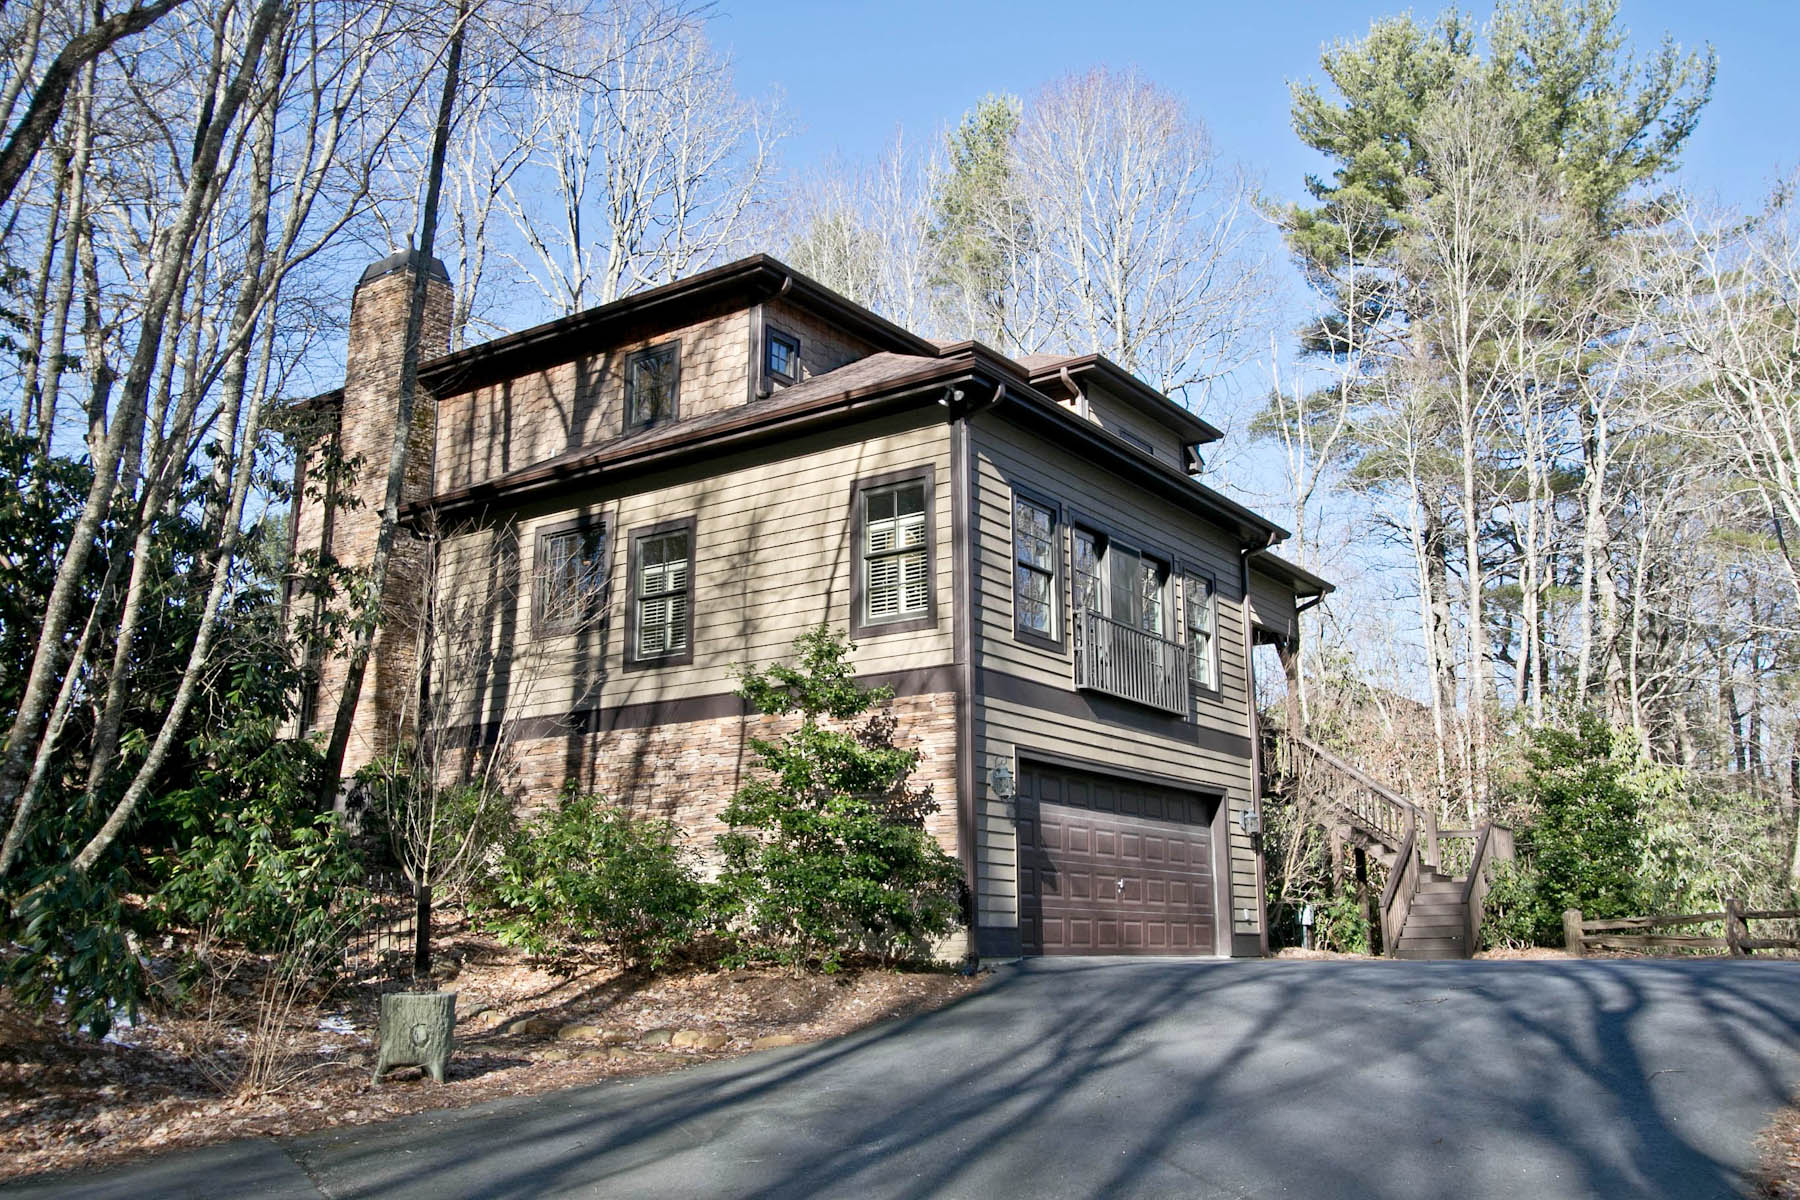 Single Family Home for Sale at 44 Bee Tree Lane Highlands, North Carolina, 28741 United States